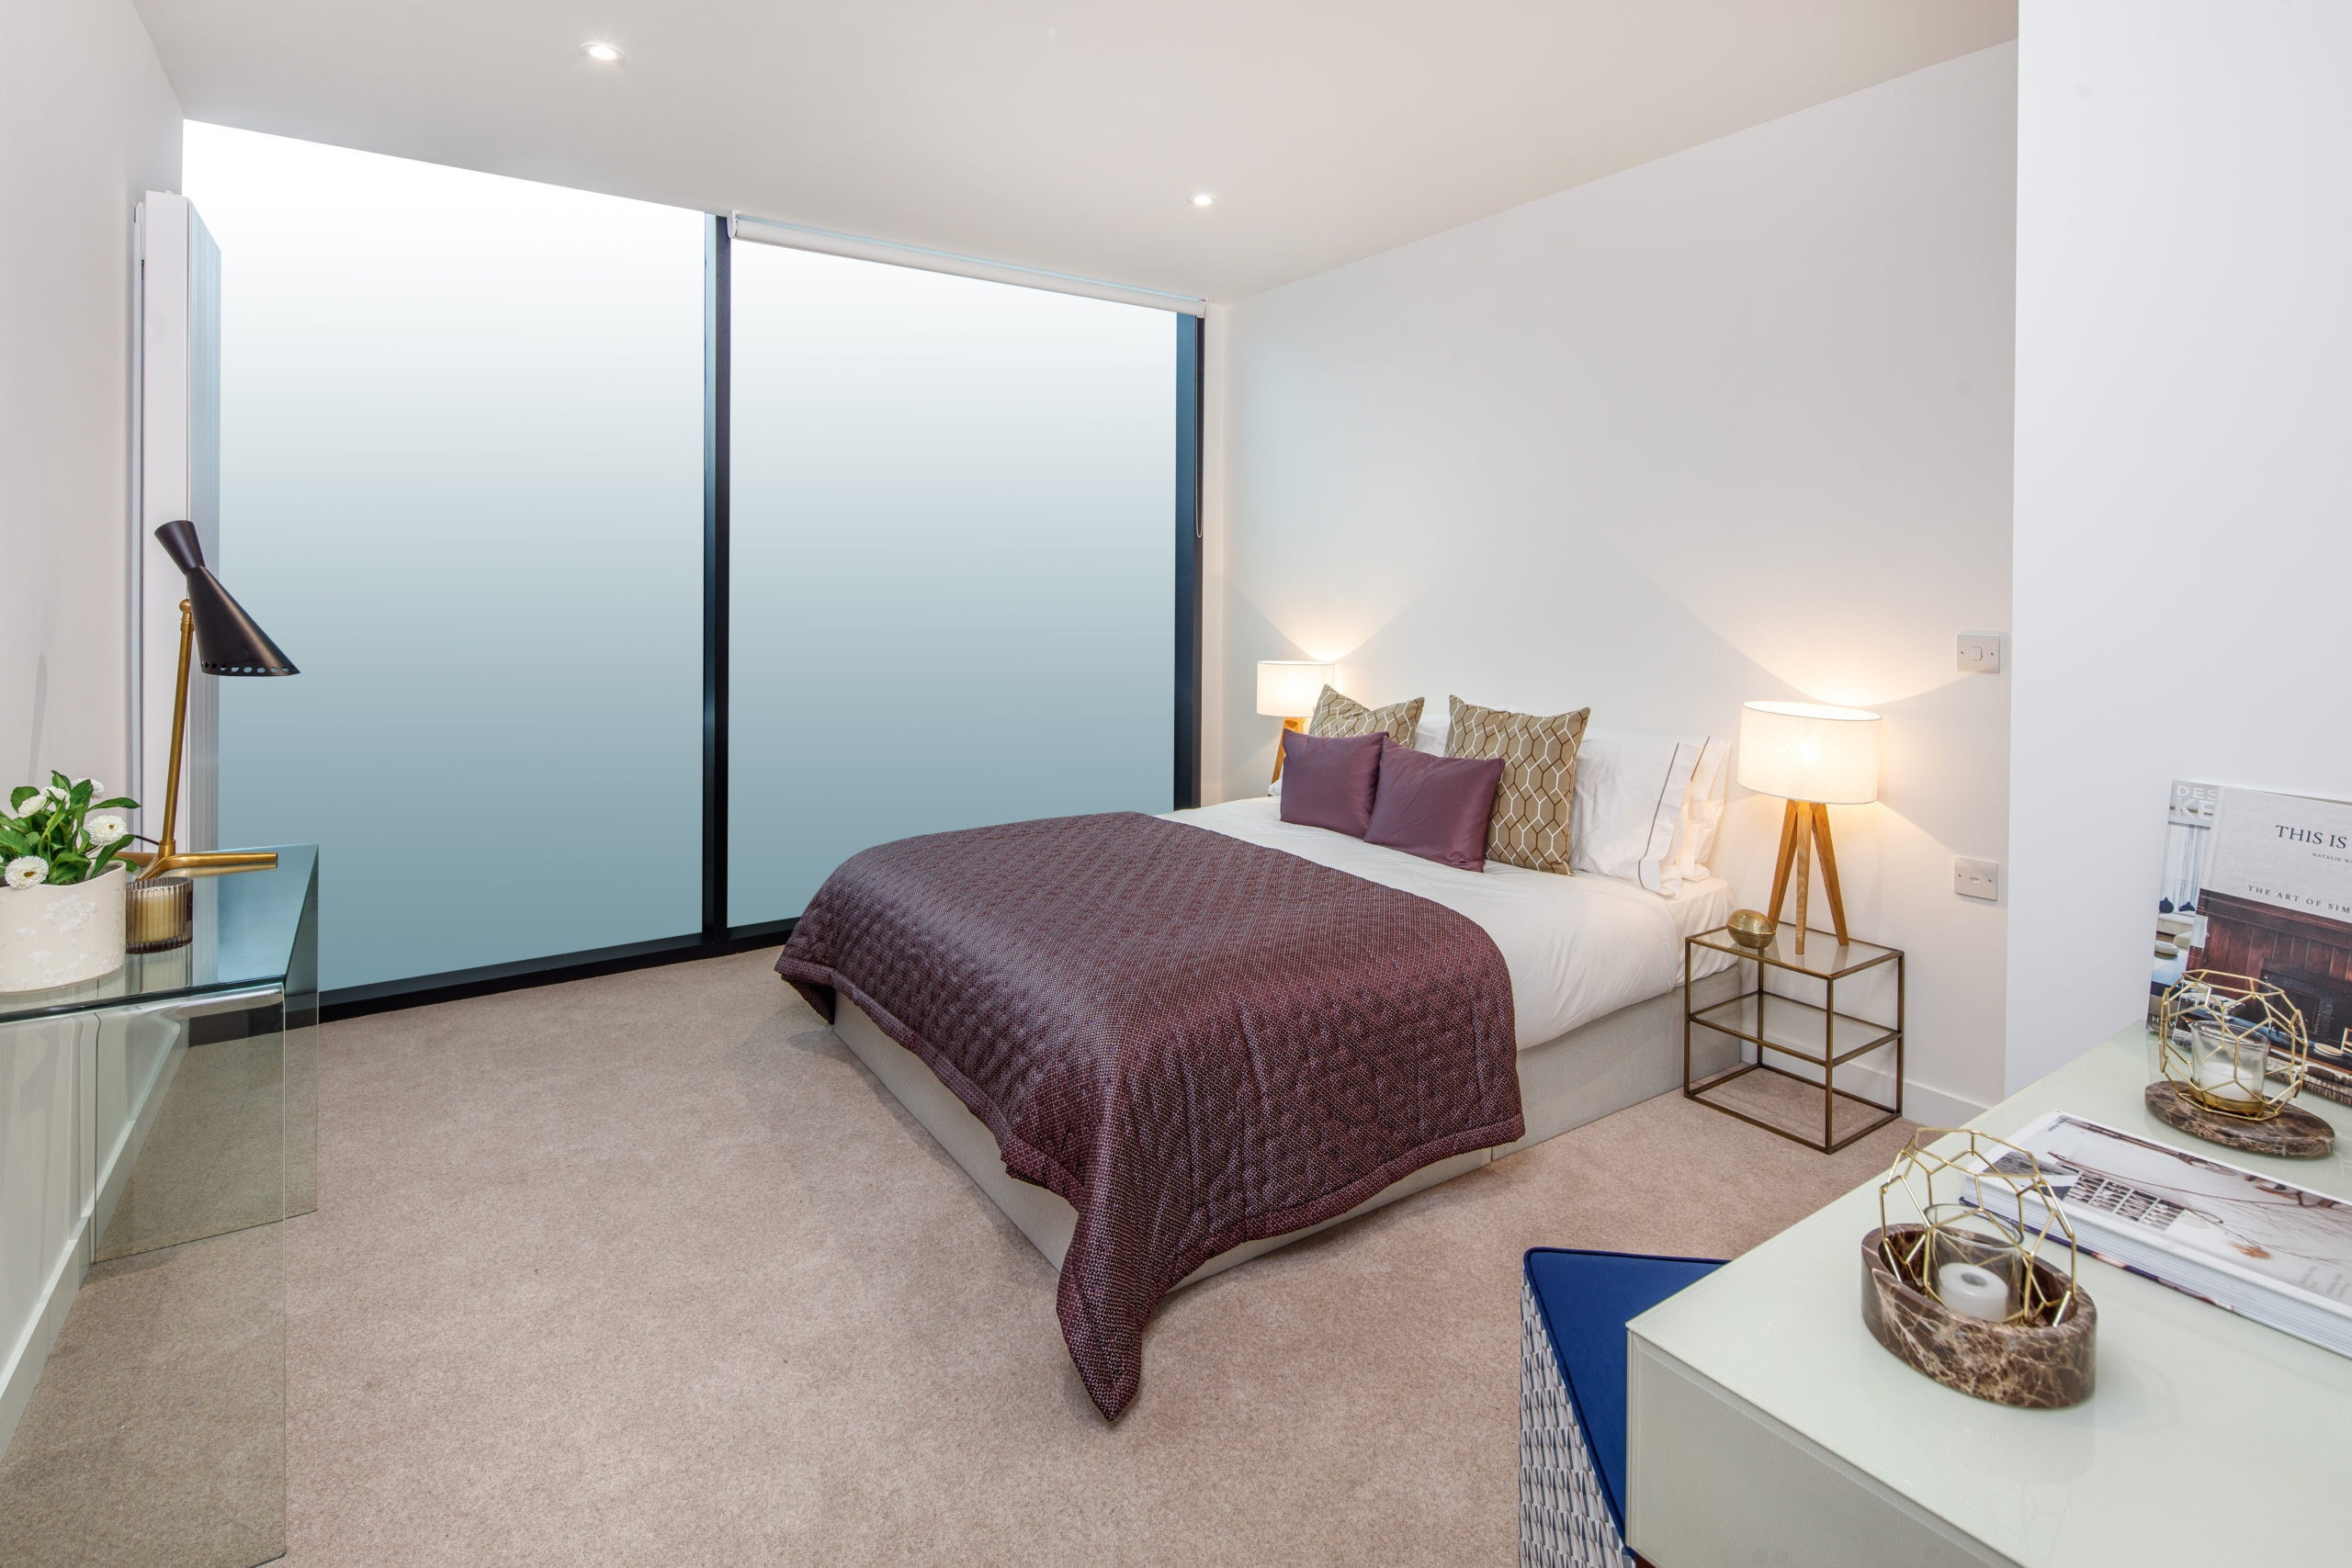 Interior show home CGI of L&Q at Queens Quarter development - Shared Ownership and Help to Buy homes available on Share to Buy